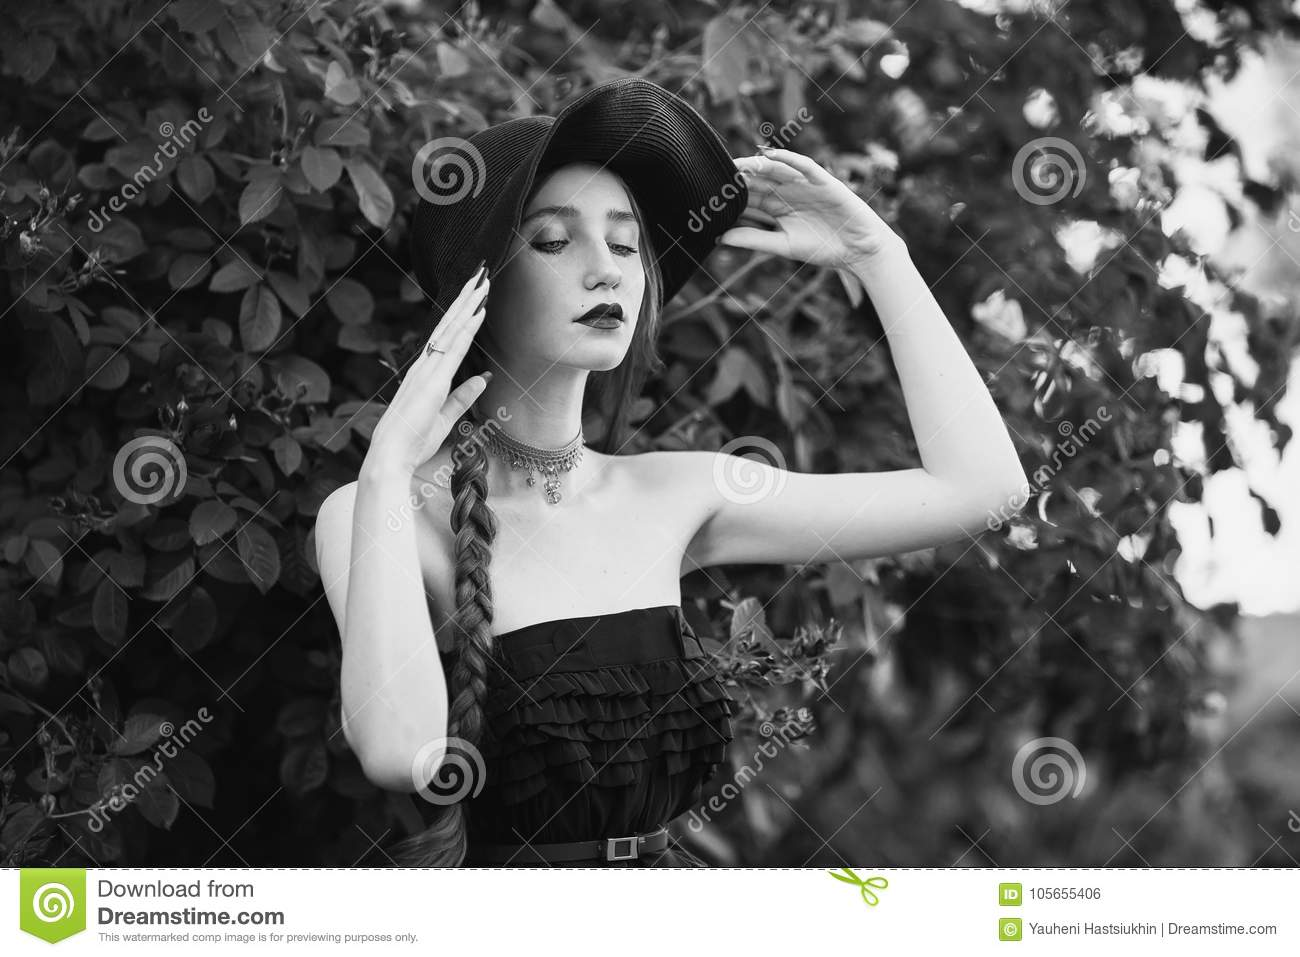 Artistic black and white photography unusual appearance fashion